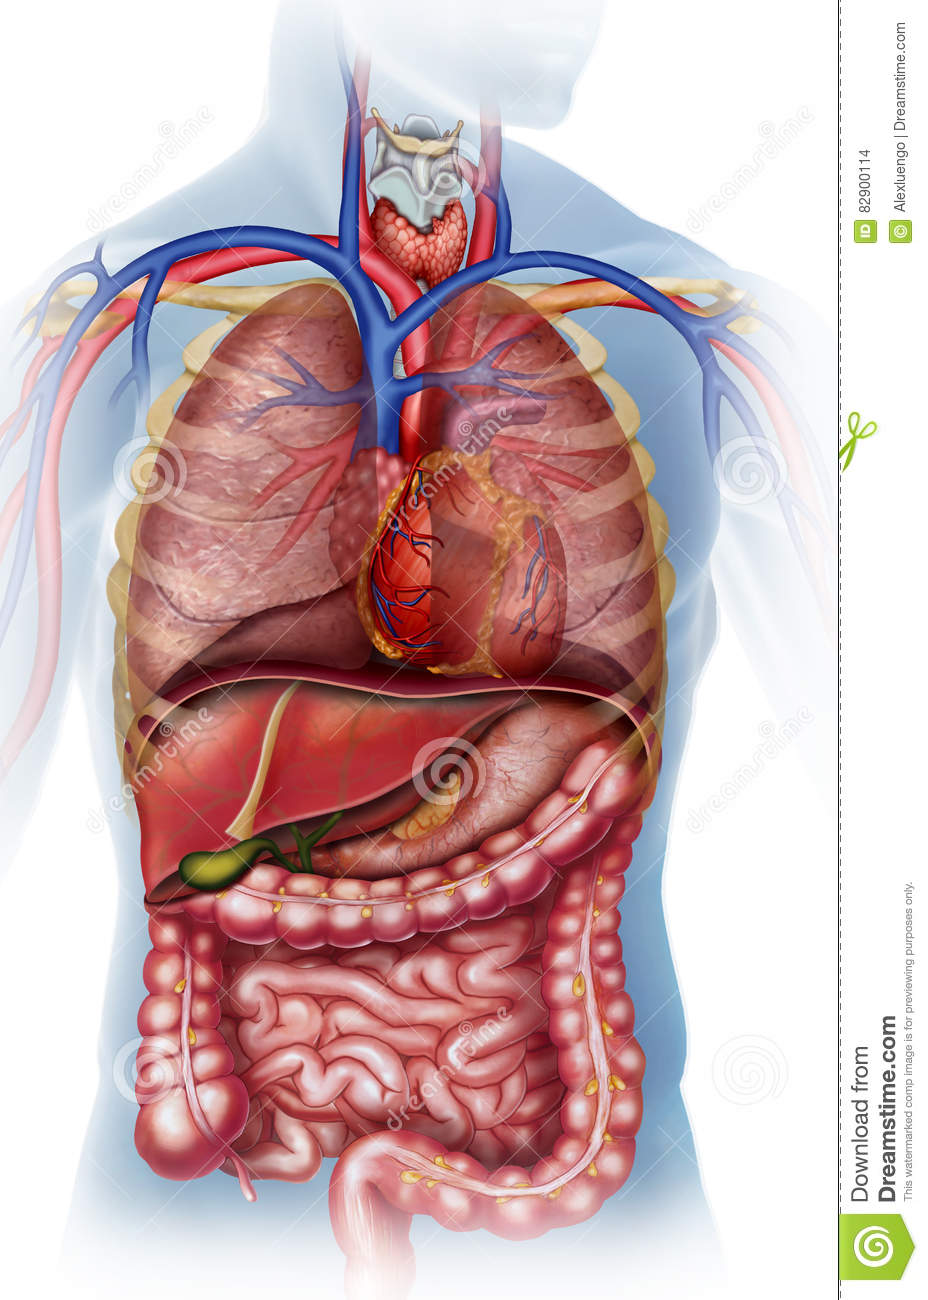 Anatomical Illustration Of The Human Body Stock Illustration ...